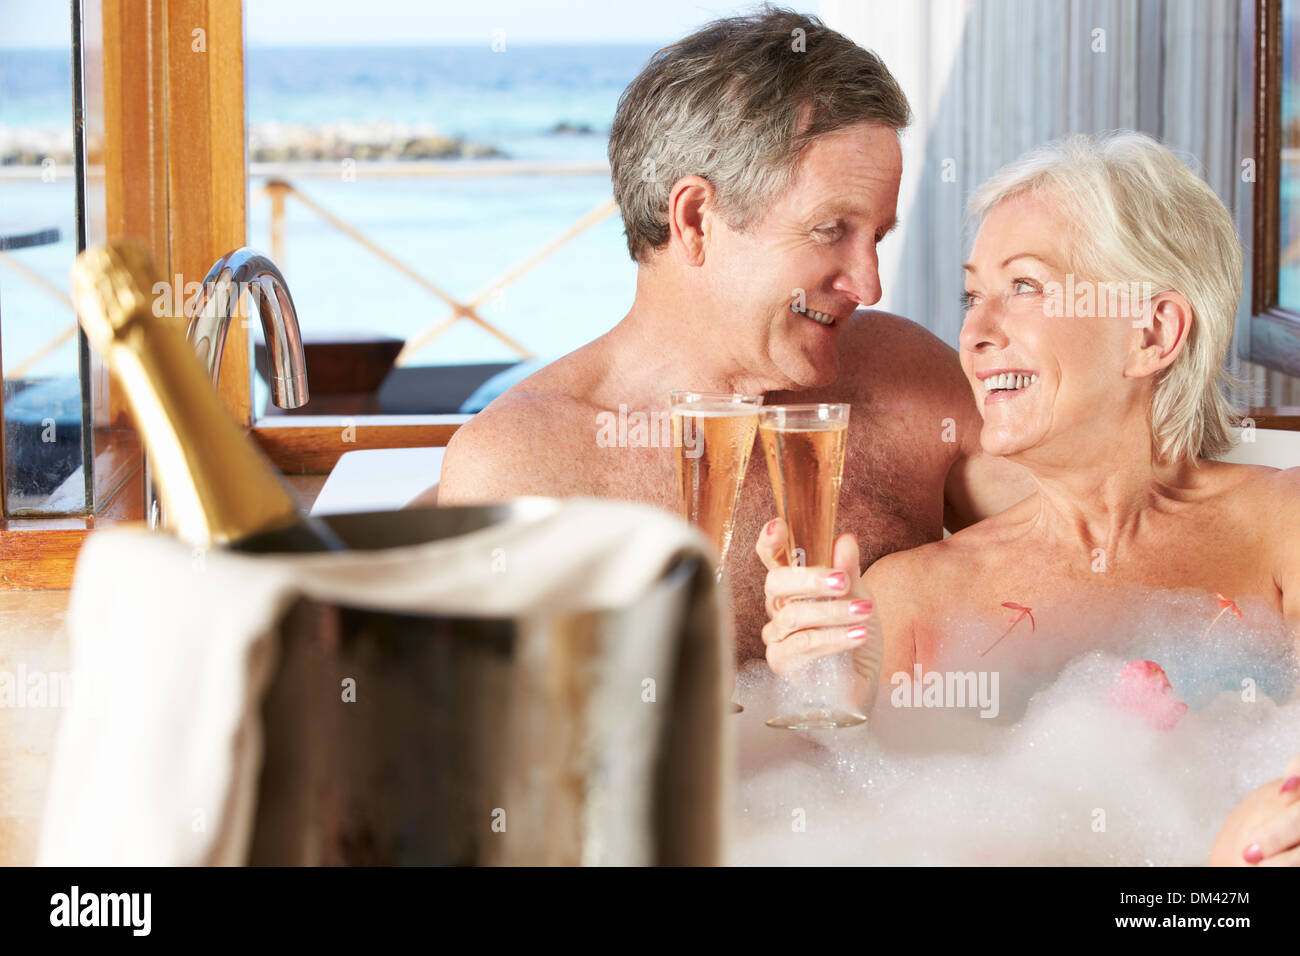 Senior Couple Relaxing In Bath Drinking Champagne Together - Stock Image